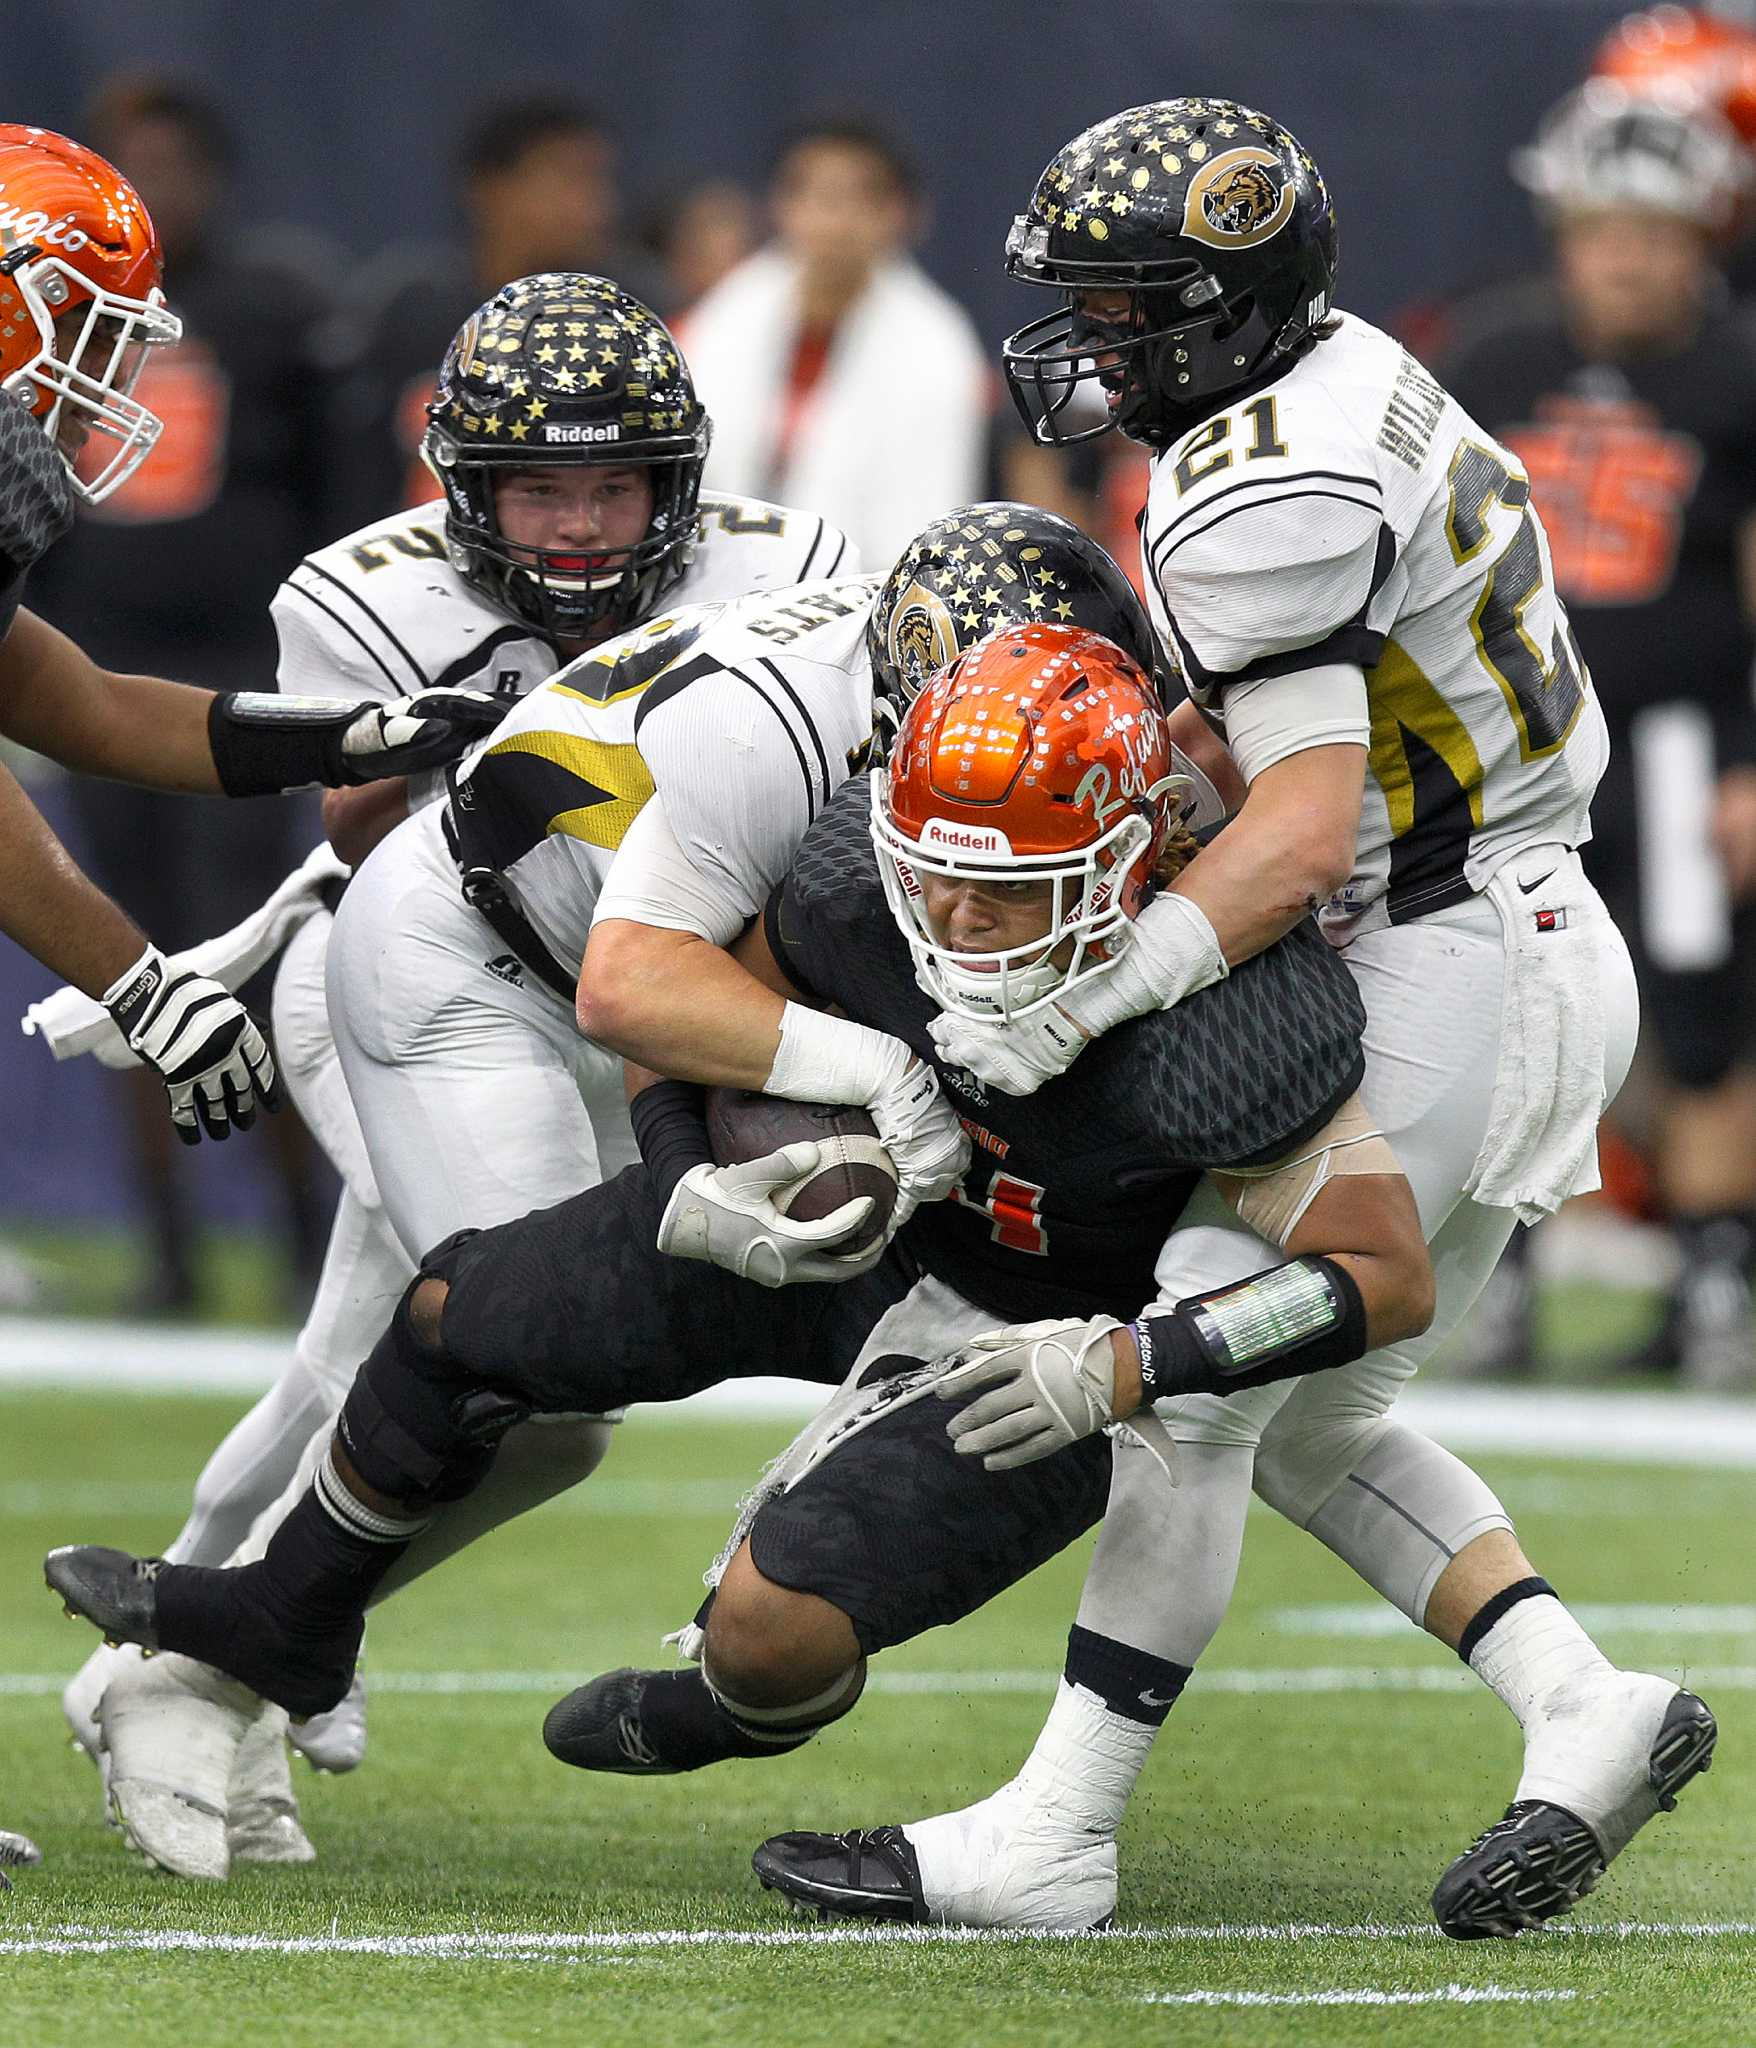 Refugio Coach Dishes Out High Praise To 2a D1 State Champ Canadian